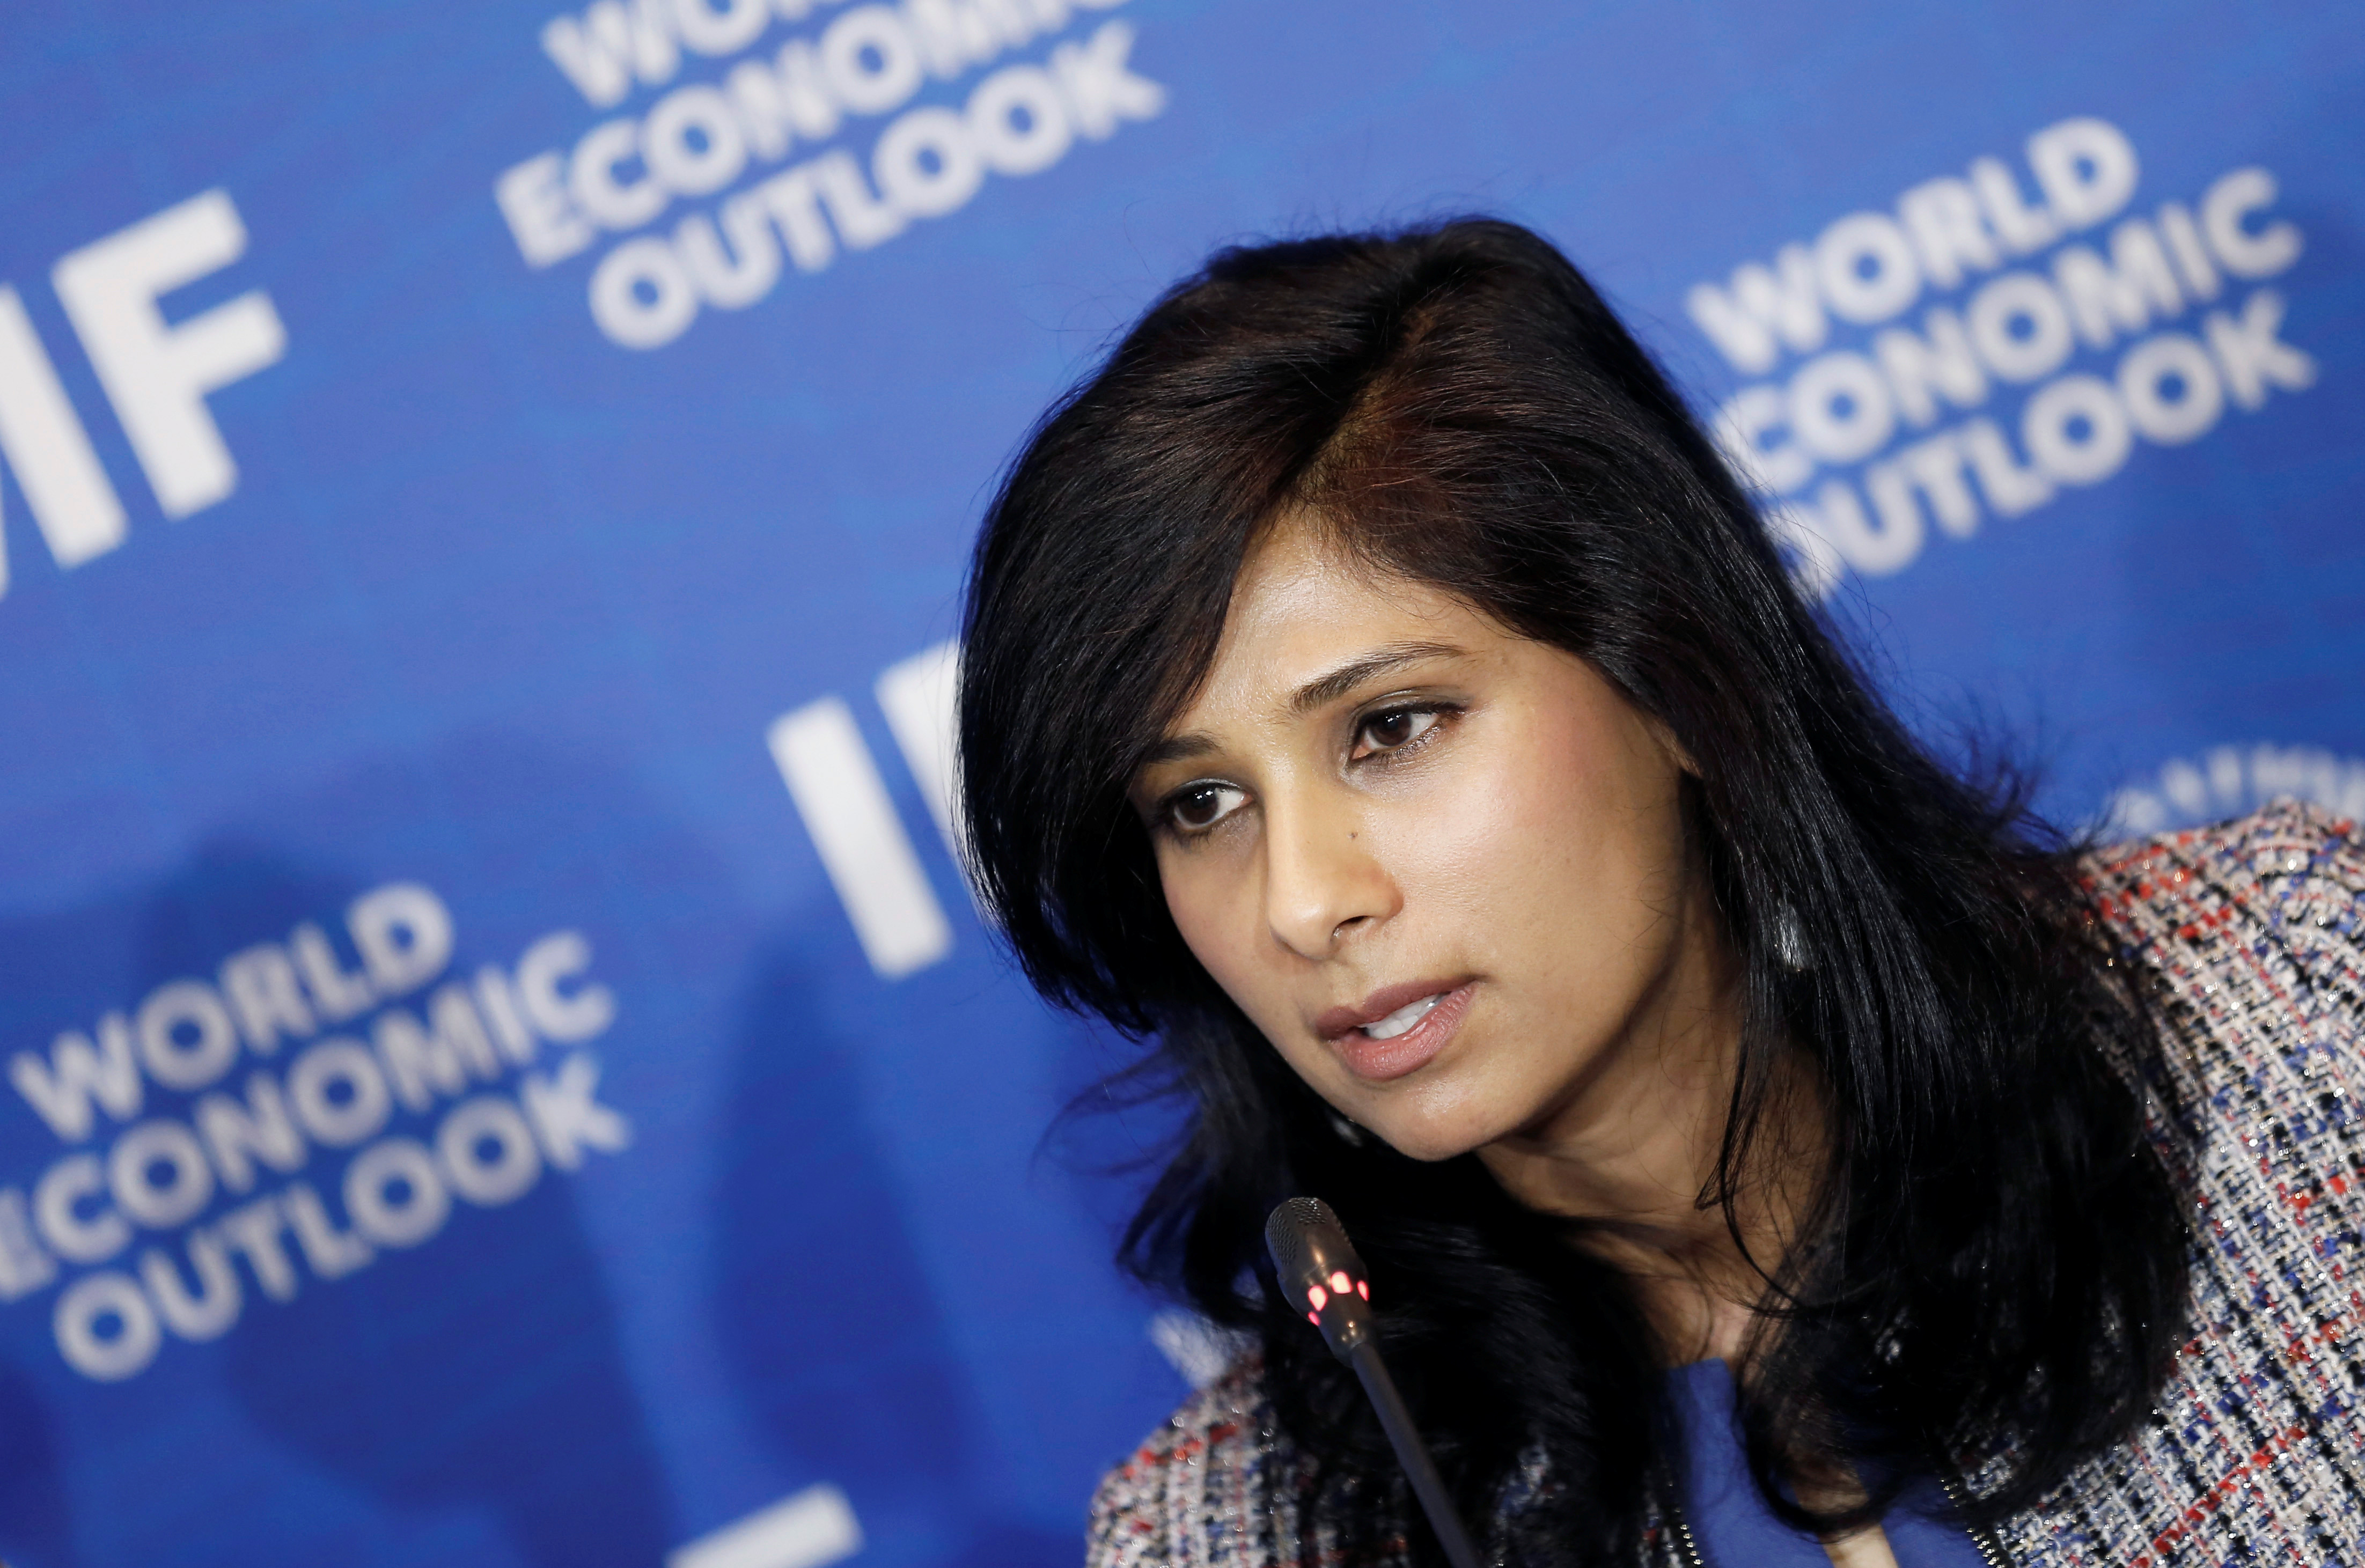 Gita Gopinath, Economic Counsellor and Director of the Research Department at the International Monetary Fund (IMF) speaks during a news conference in Santiago, Chile, July 23, 2019. REUTERS/Rodrigo Garrido - RC11C8780C90